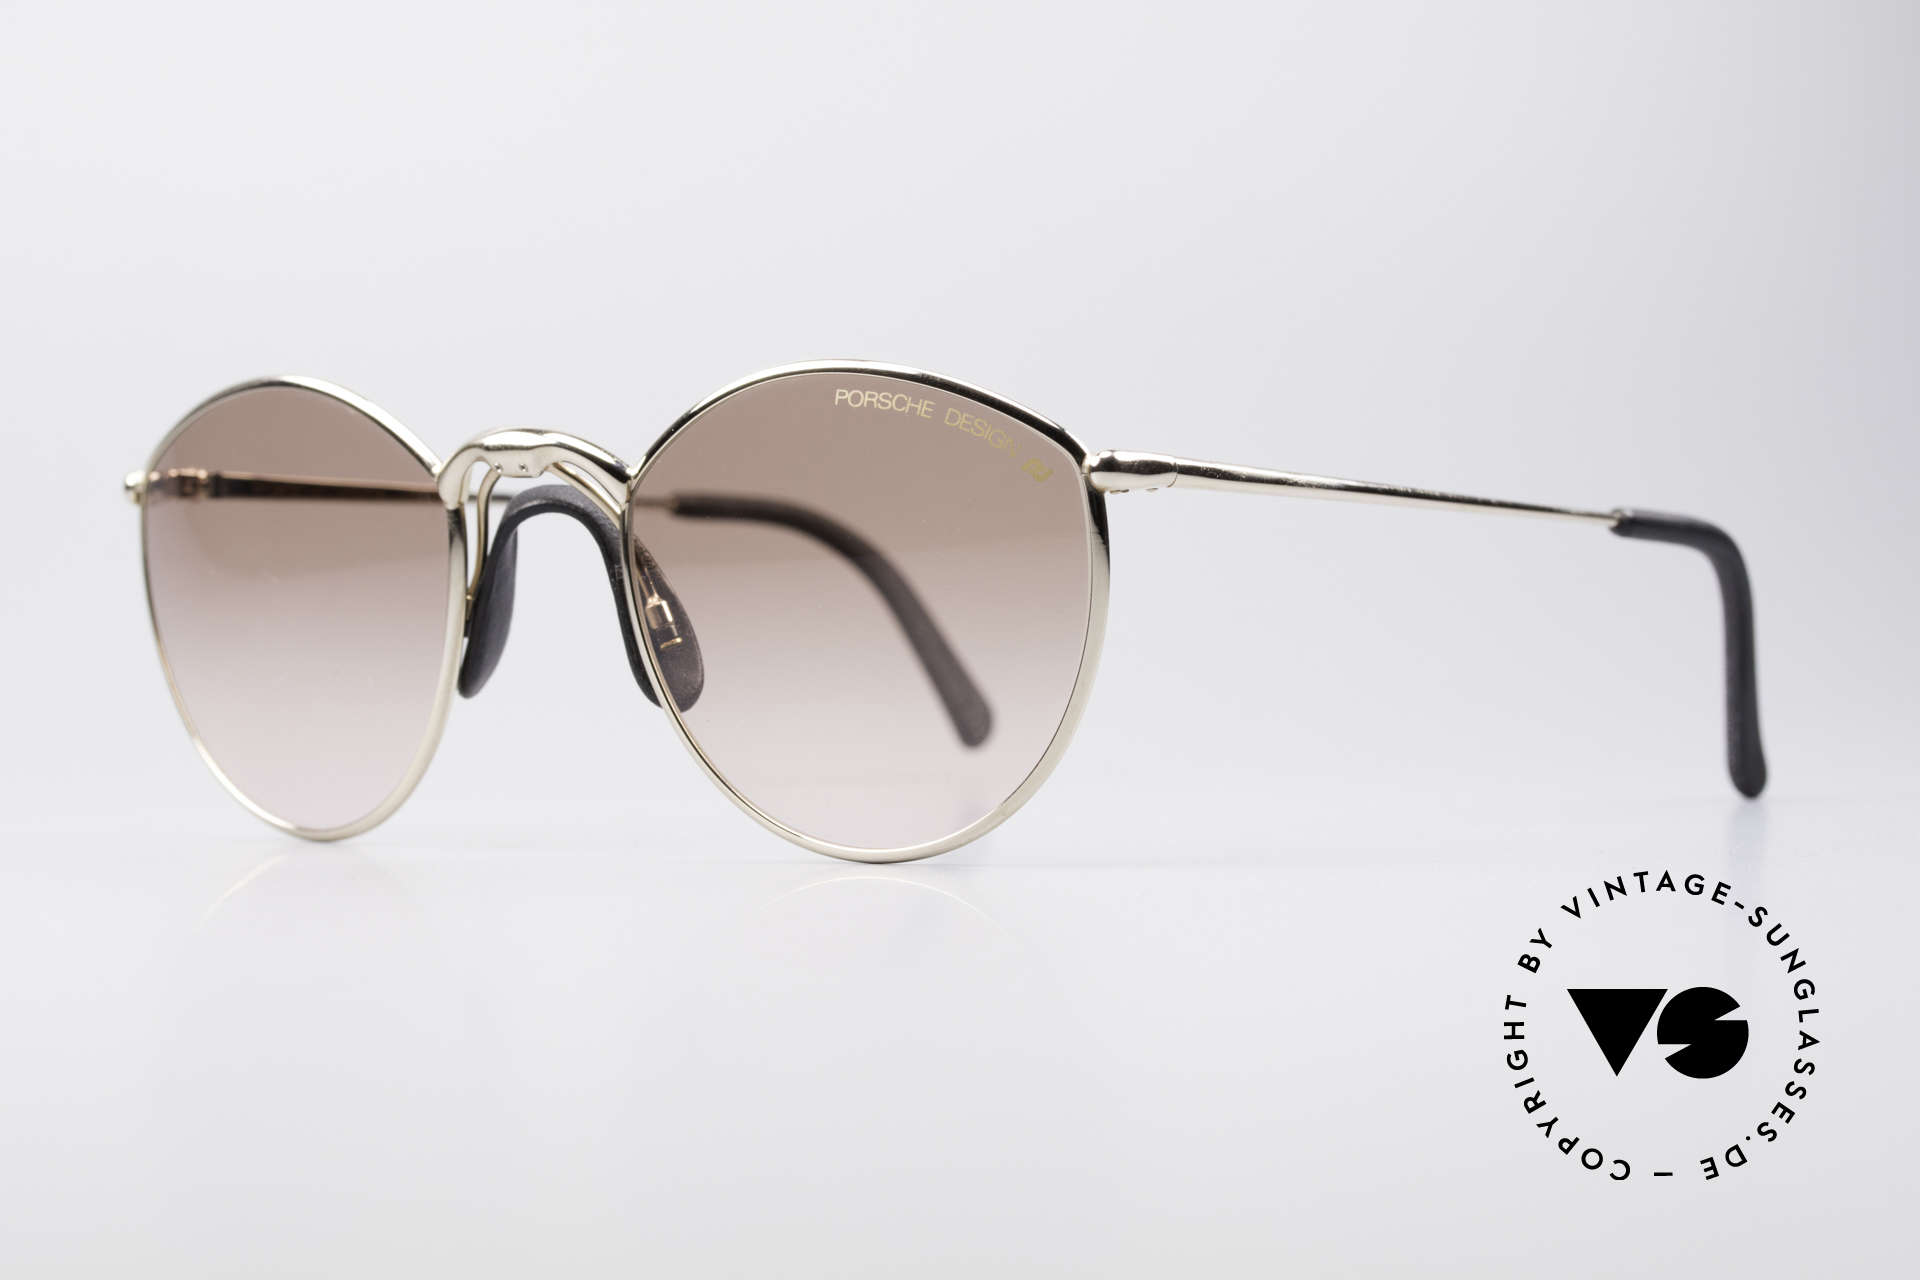 Porsche 5638 True 90's Vintage Glasses, precious but still sporty and classy - truly VINTAGE!, Made for Men and Women